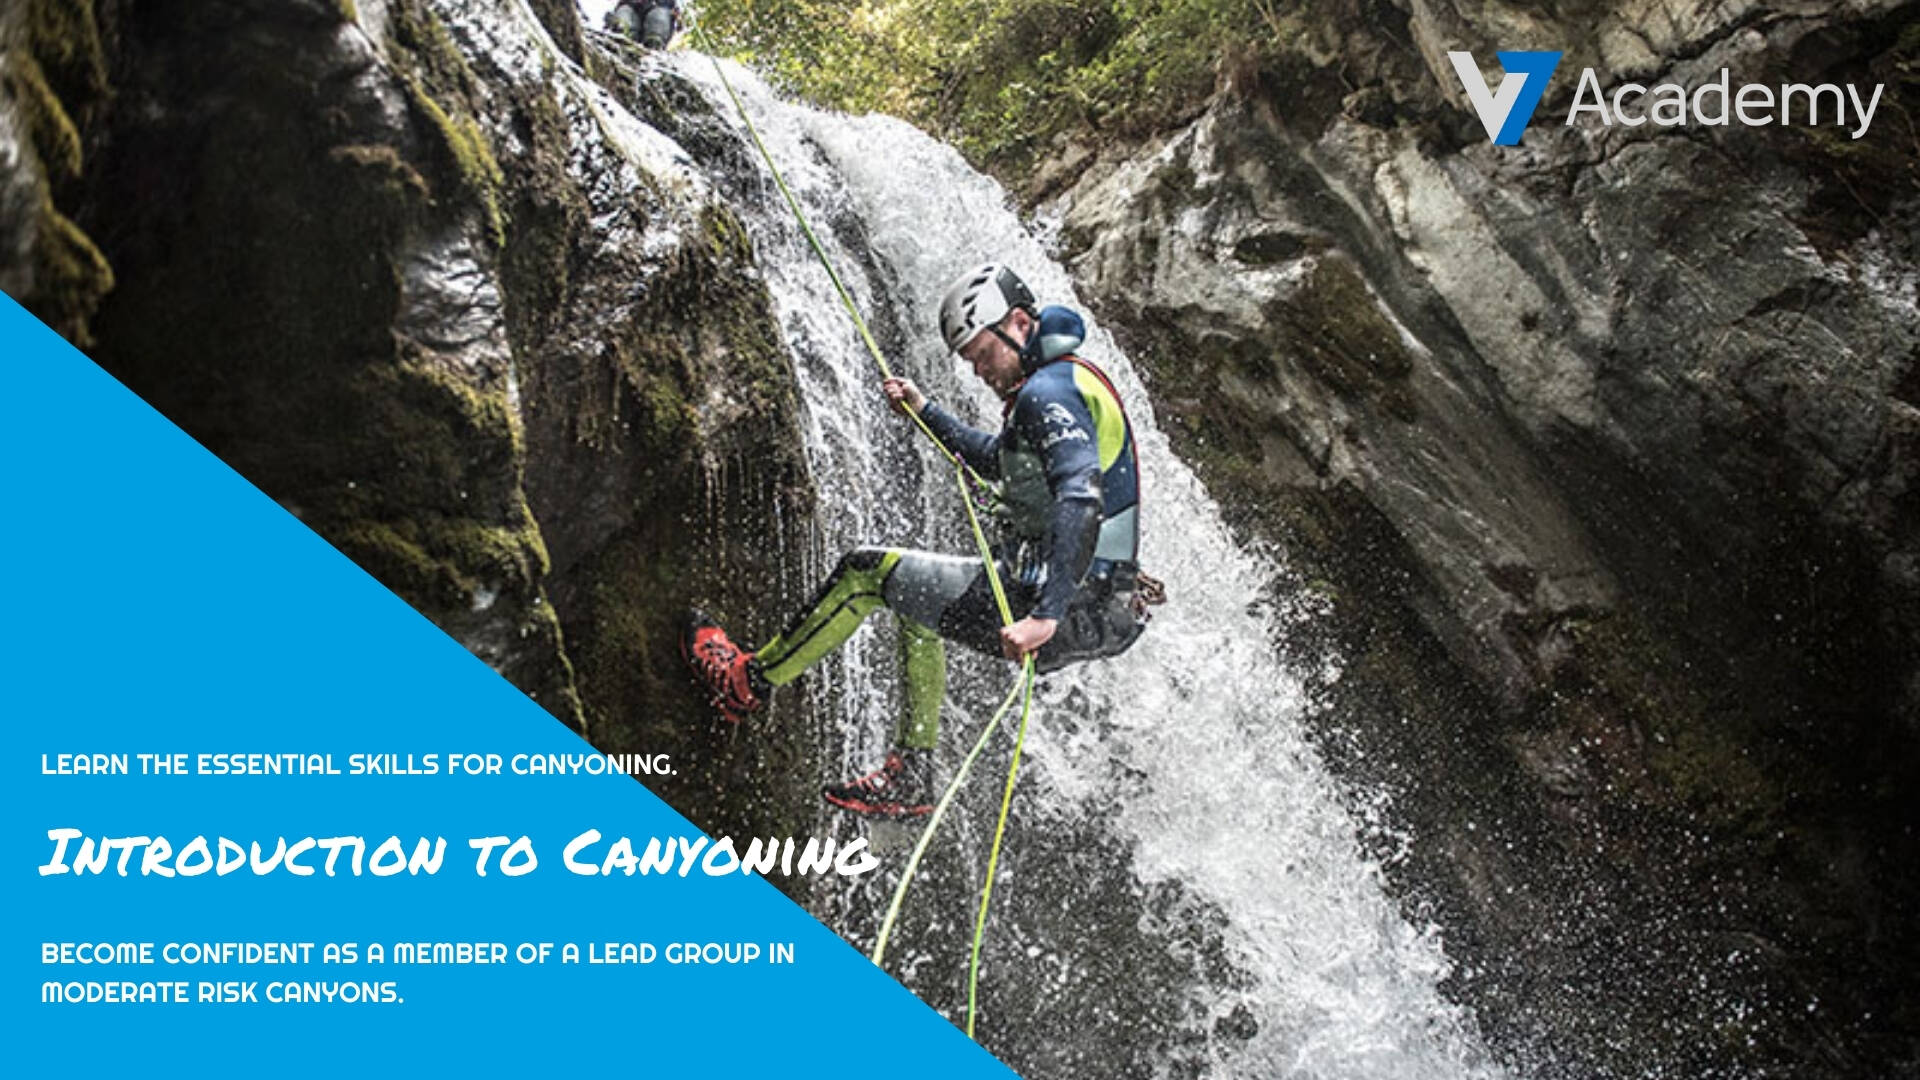 introduction to canyoning training course